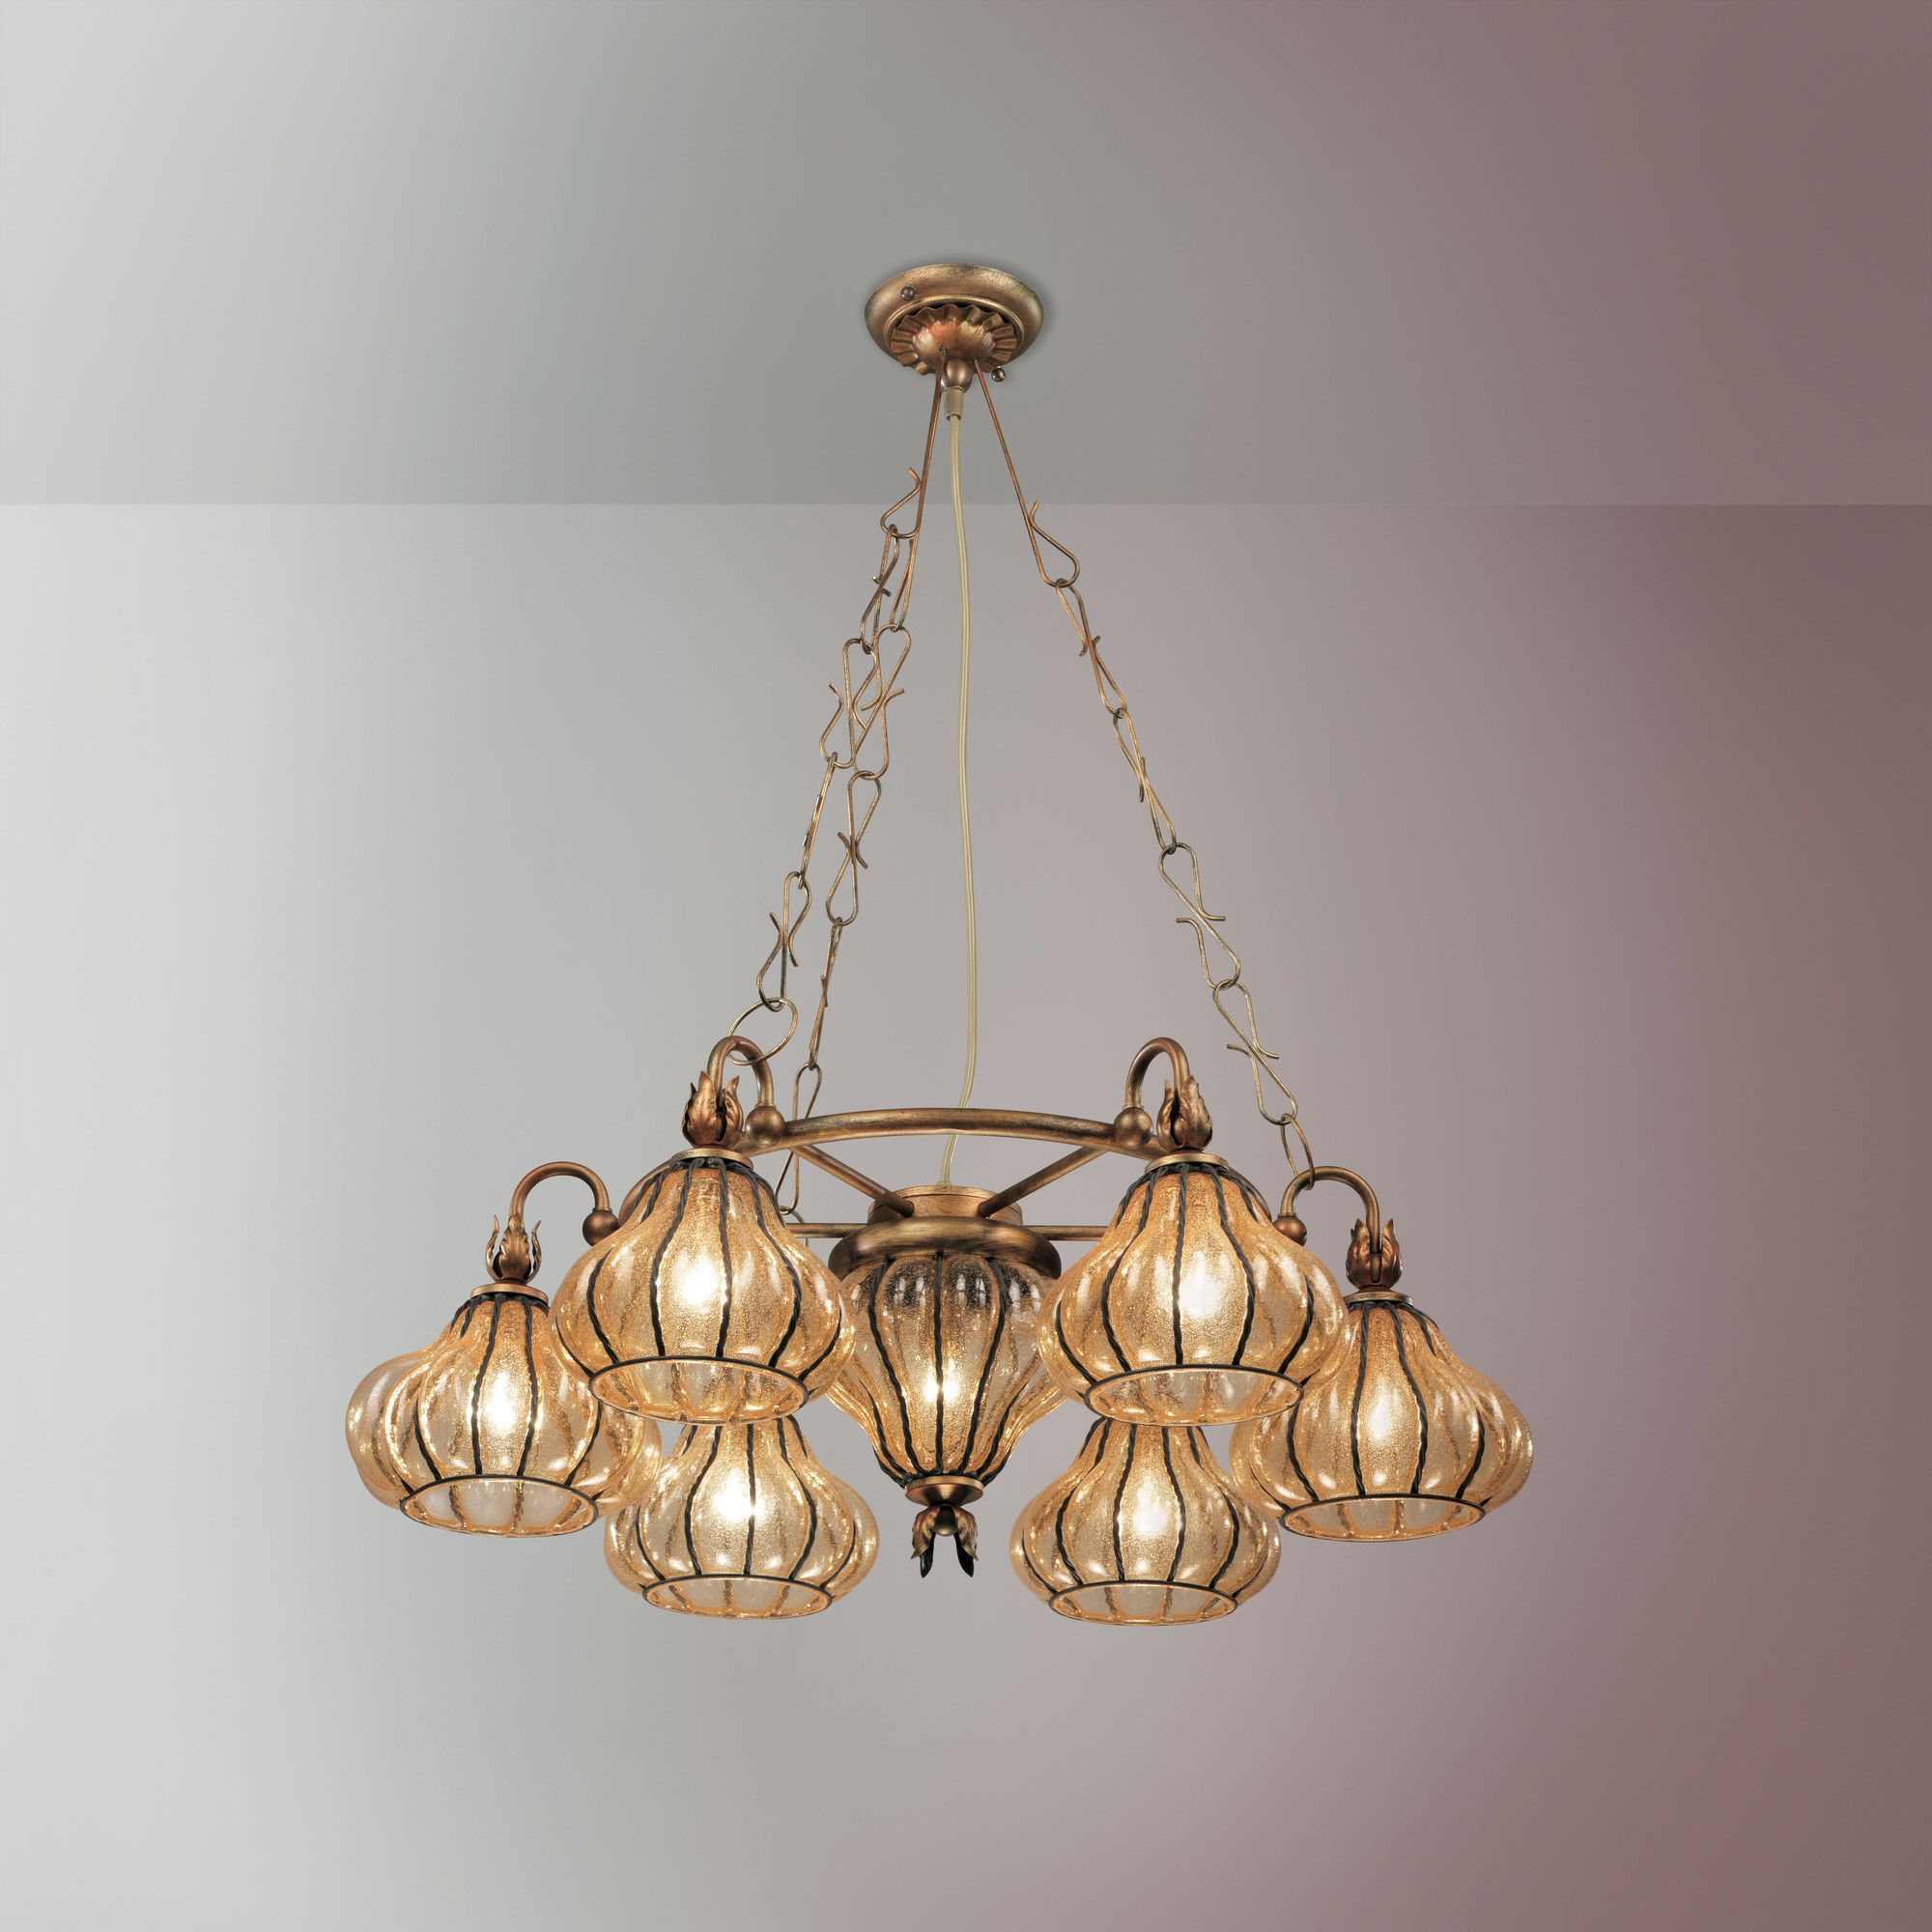 Siru Vecchia Murano Seven Light Pendant - Amber Scavo at Tesco Direct